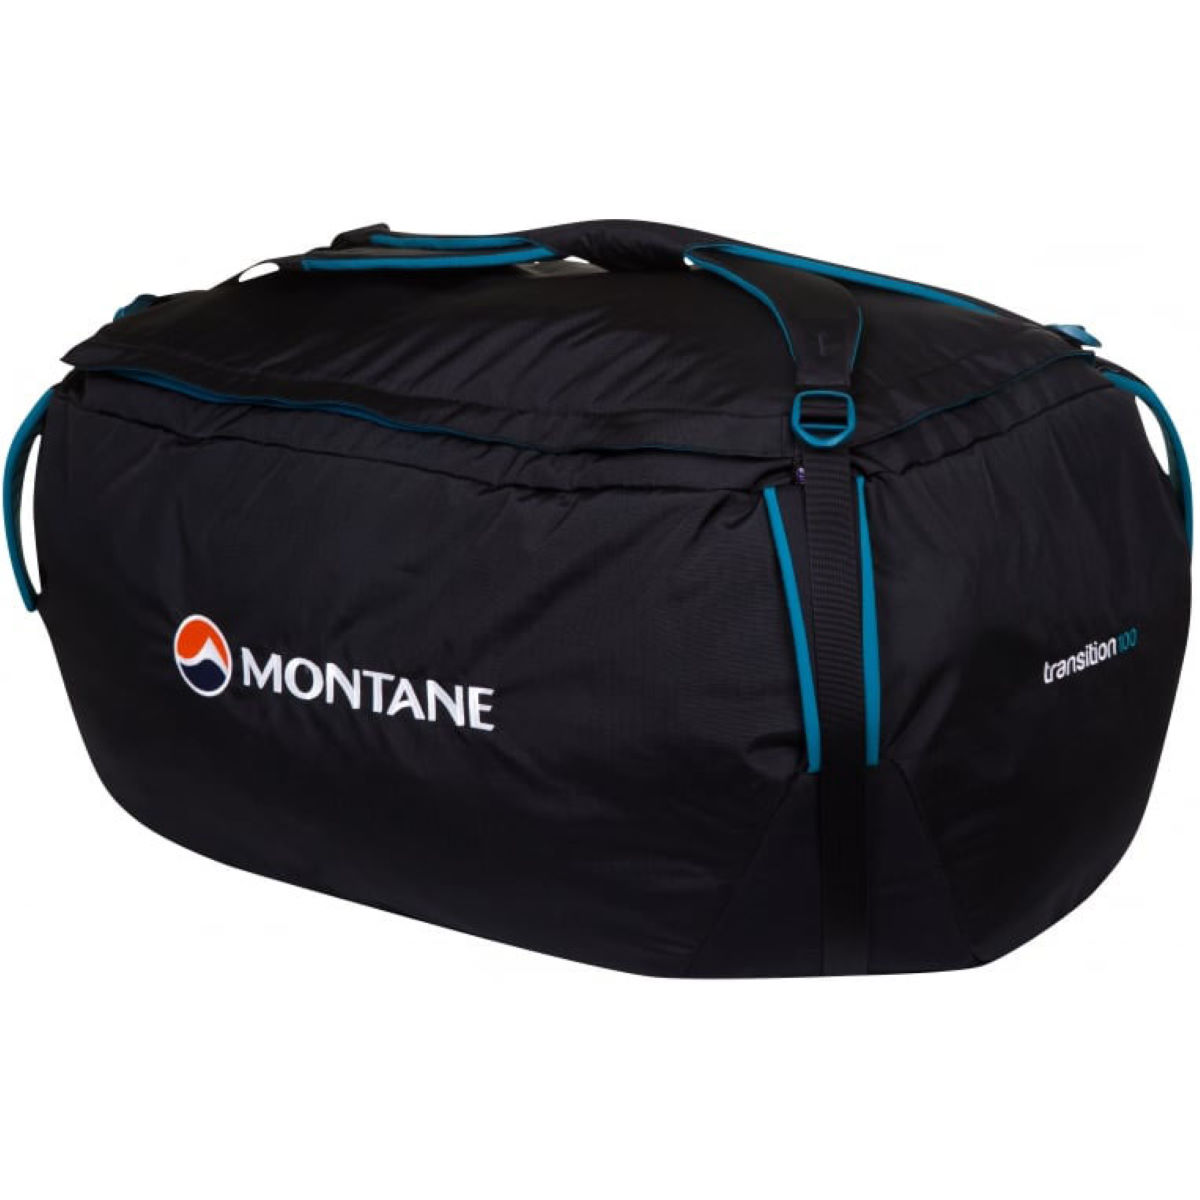 Montane Montane Transition 95 Duffle Bag   Transition Bags